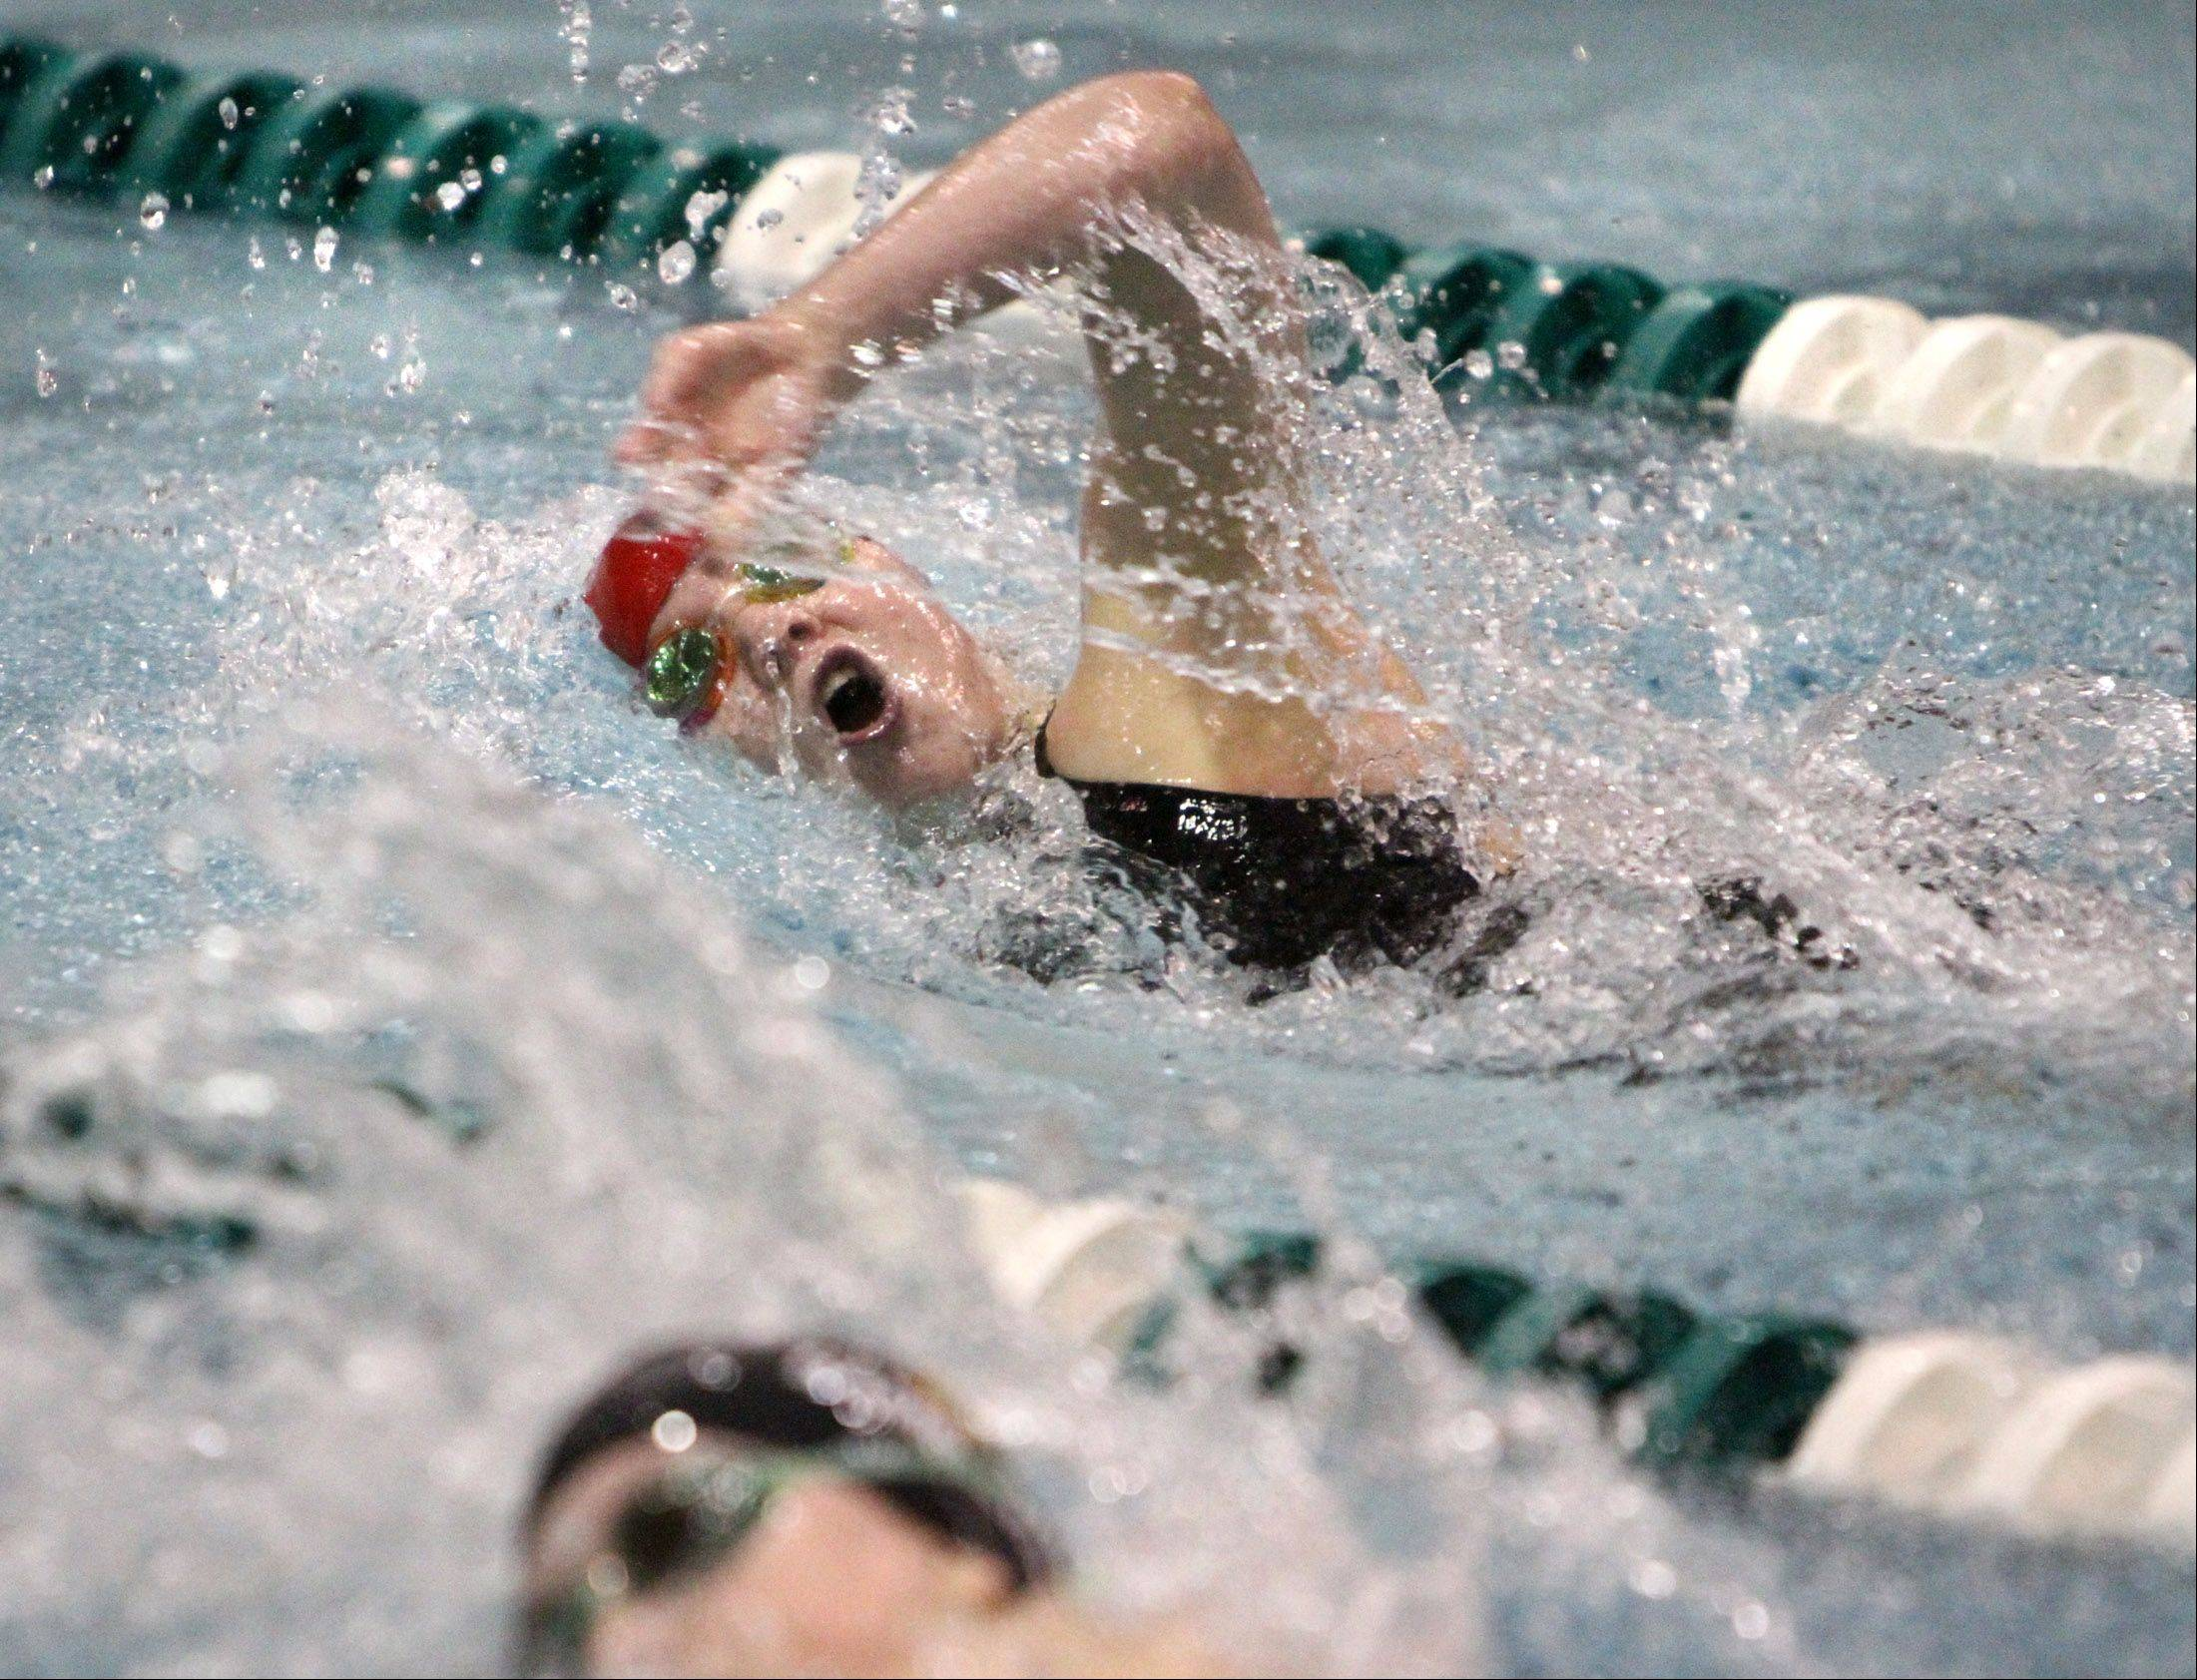 Mundelein's Erin Falconer qualified 10th in the 100-yard freestyle in :52.38 at the state meet preliminaries in Winnetka on Friday.